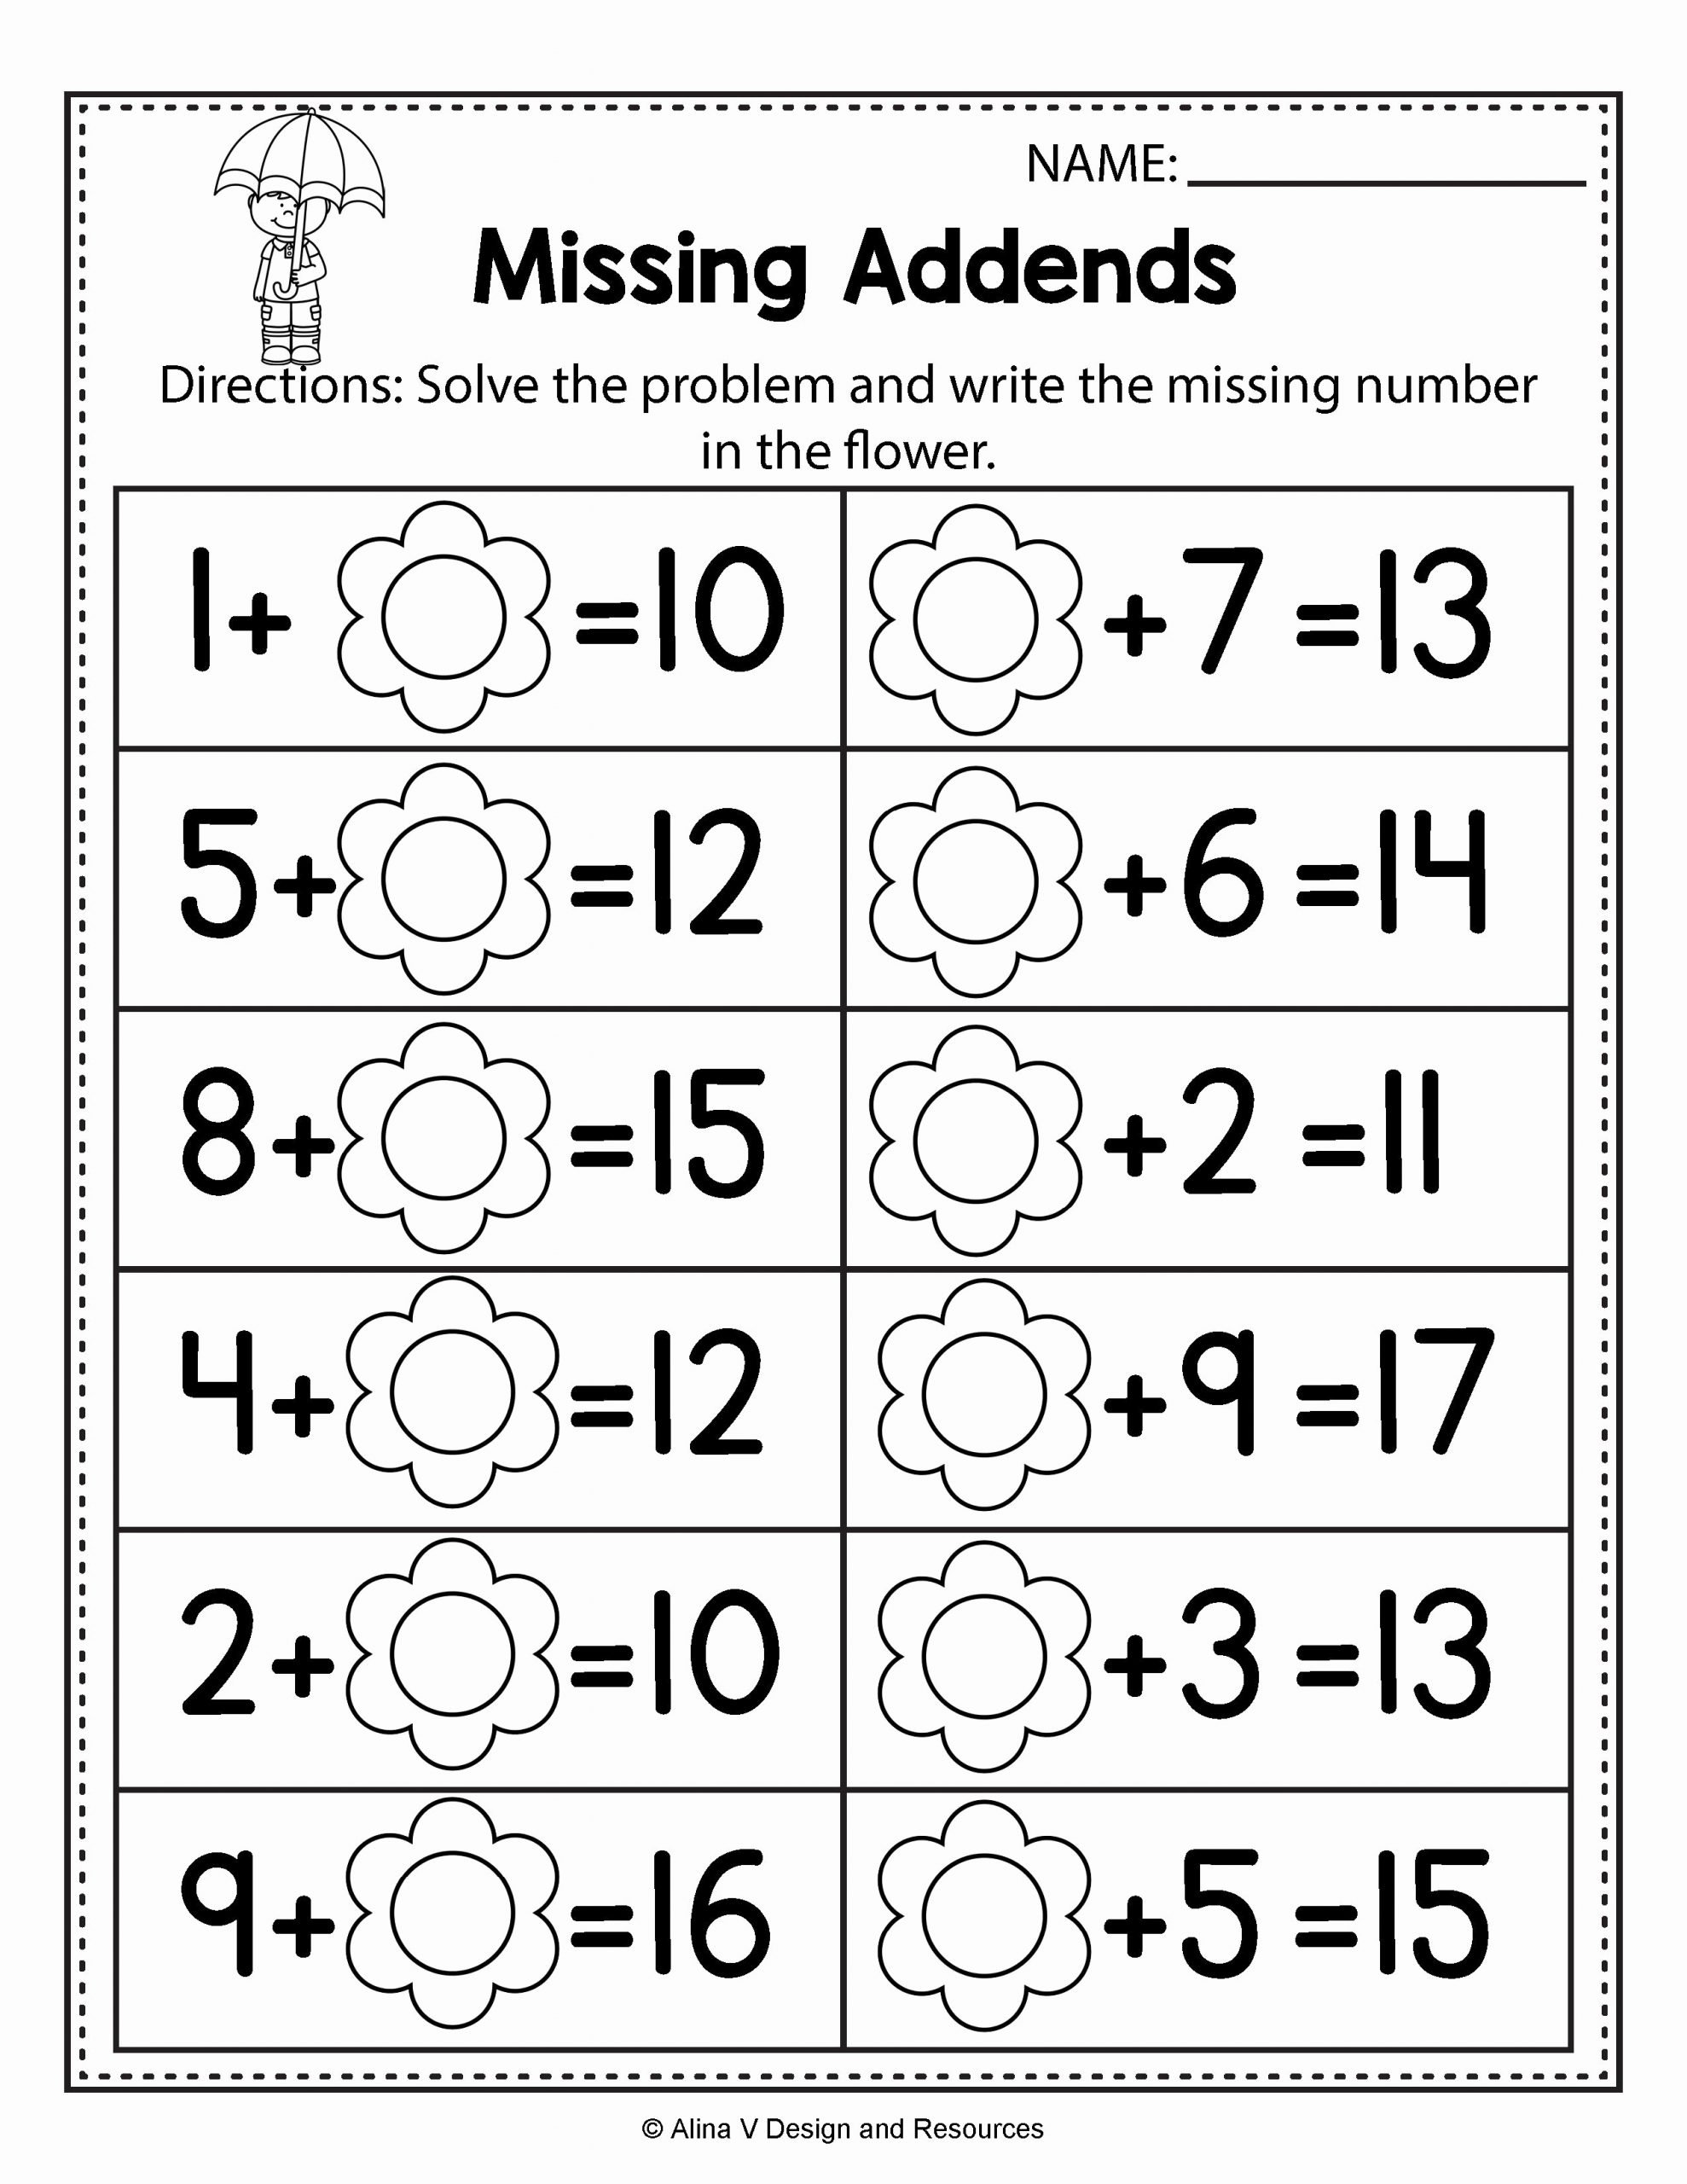 Missing Addends Worksheets 1st Grade New First Grade Missing Addend Worksheets Refrence Unique Free